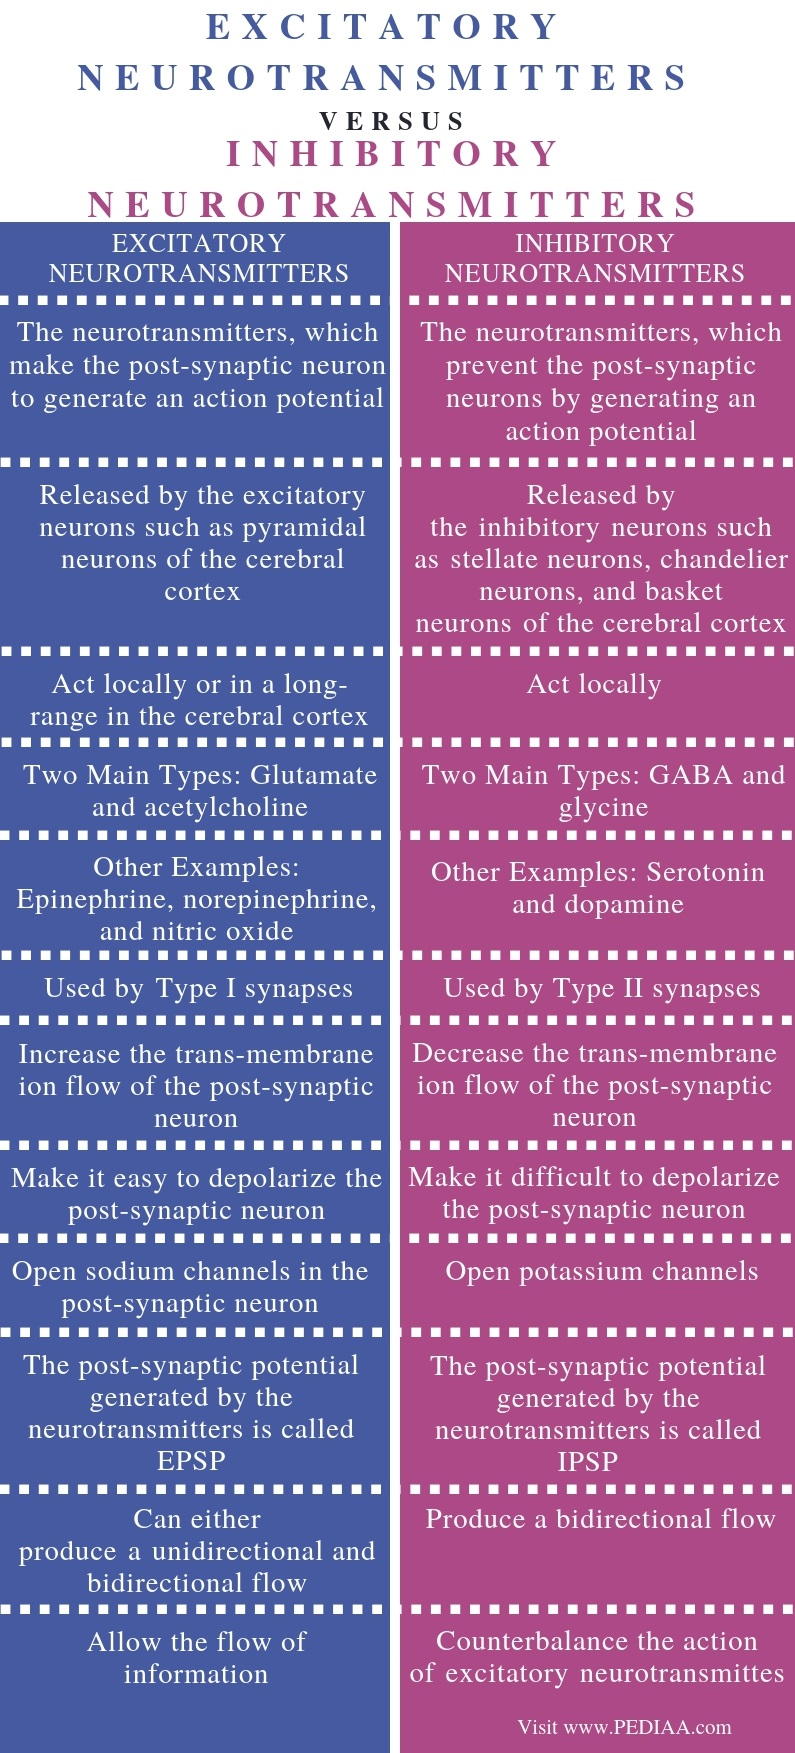 Difference Between Excitatory and Inhibitory Neurotransmitters - Comparison Summary